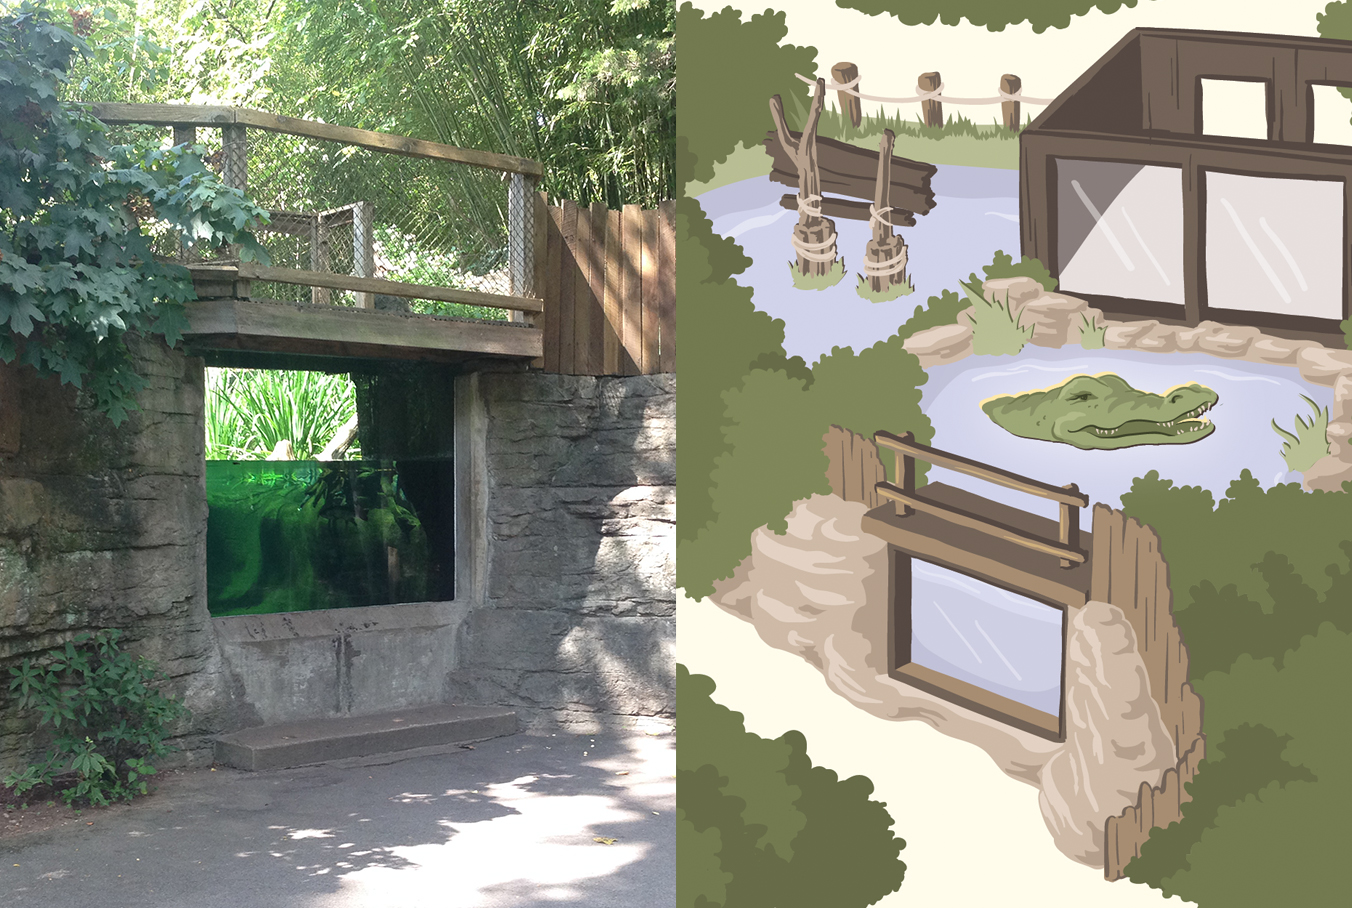 Alligator Cove - this one was kinda complicated because it can be viewed from two different levels one either side, but it worked out.